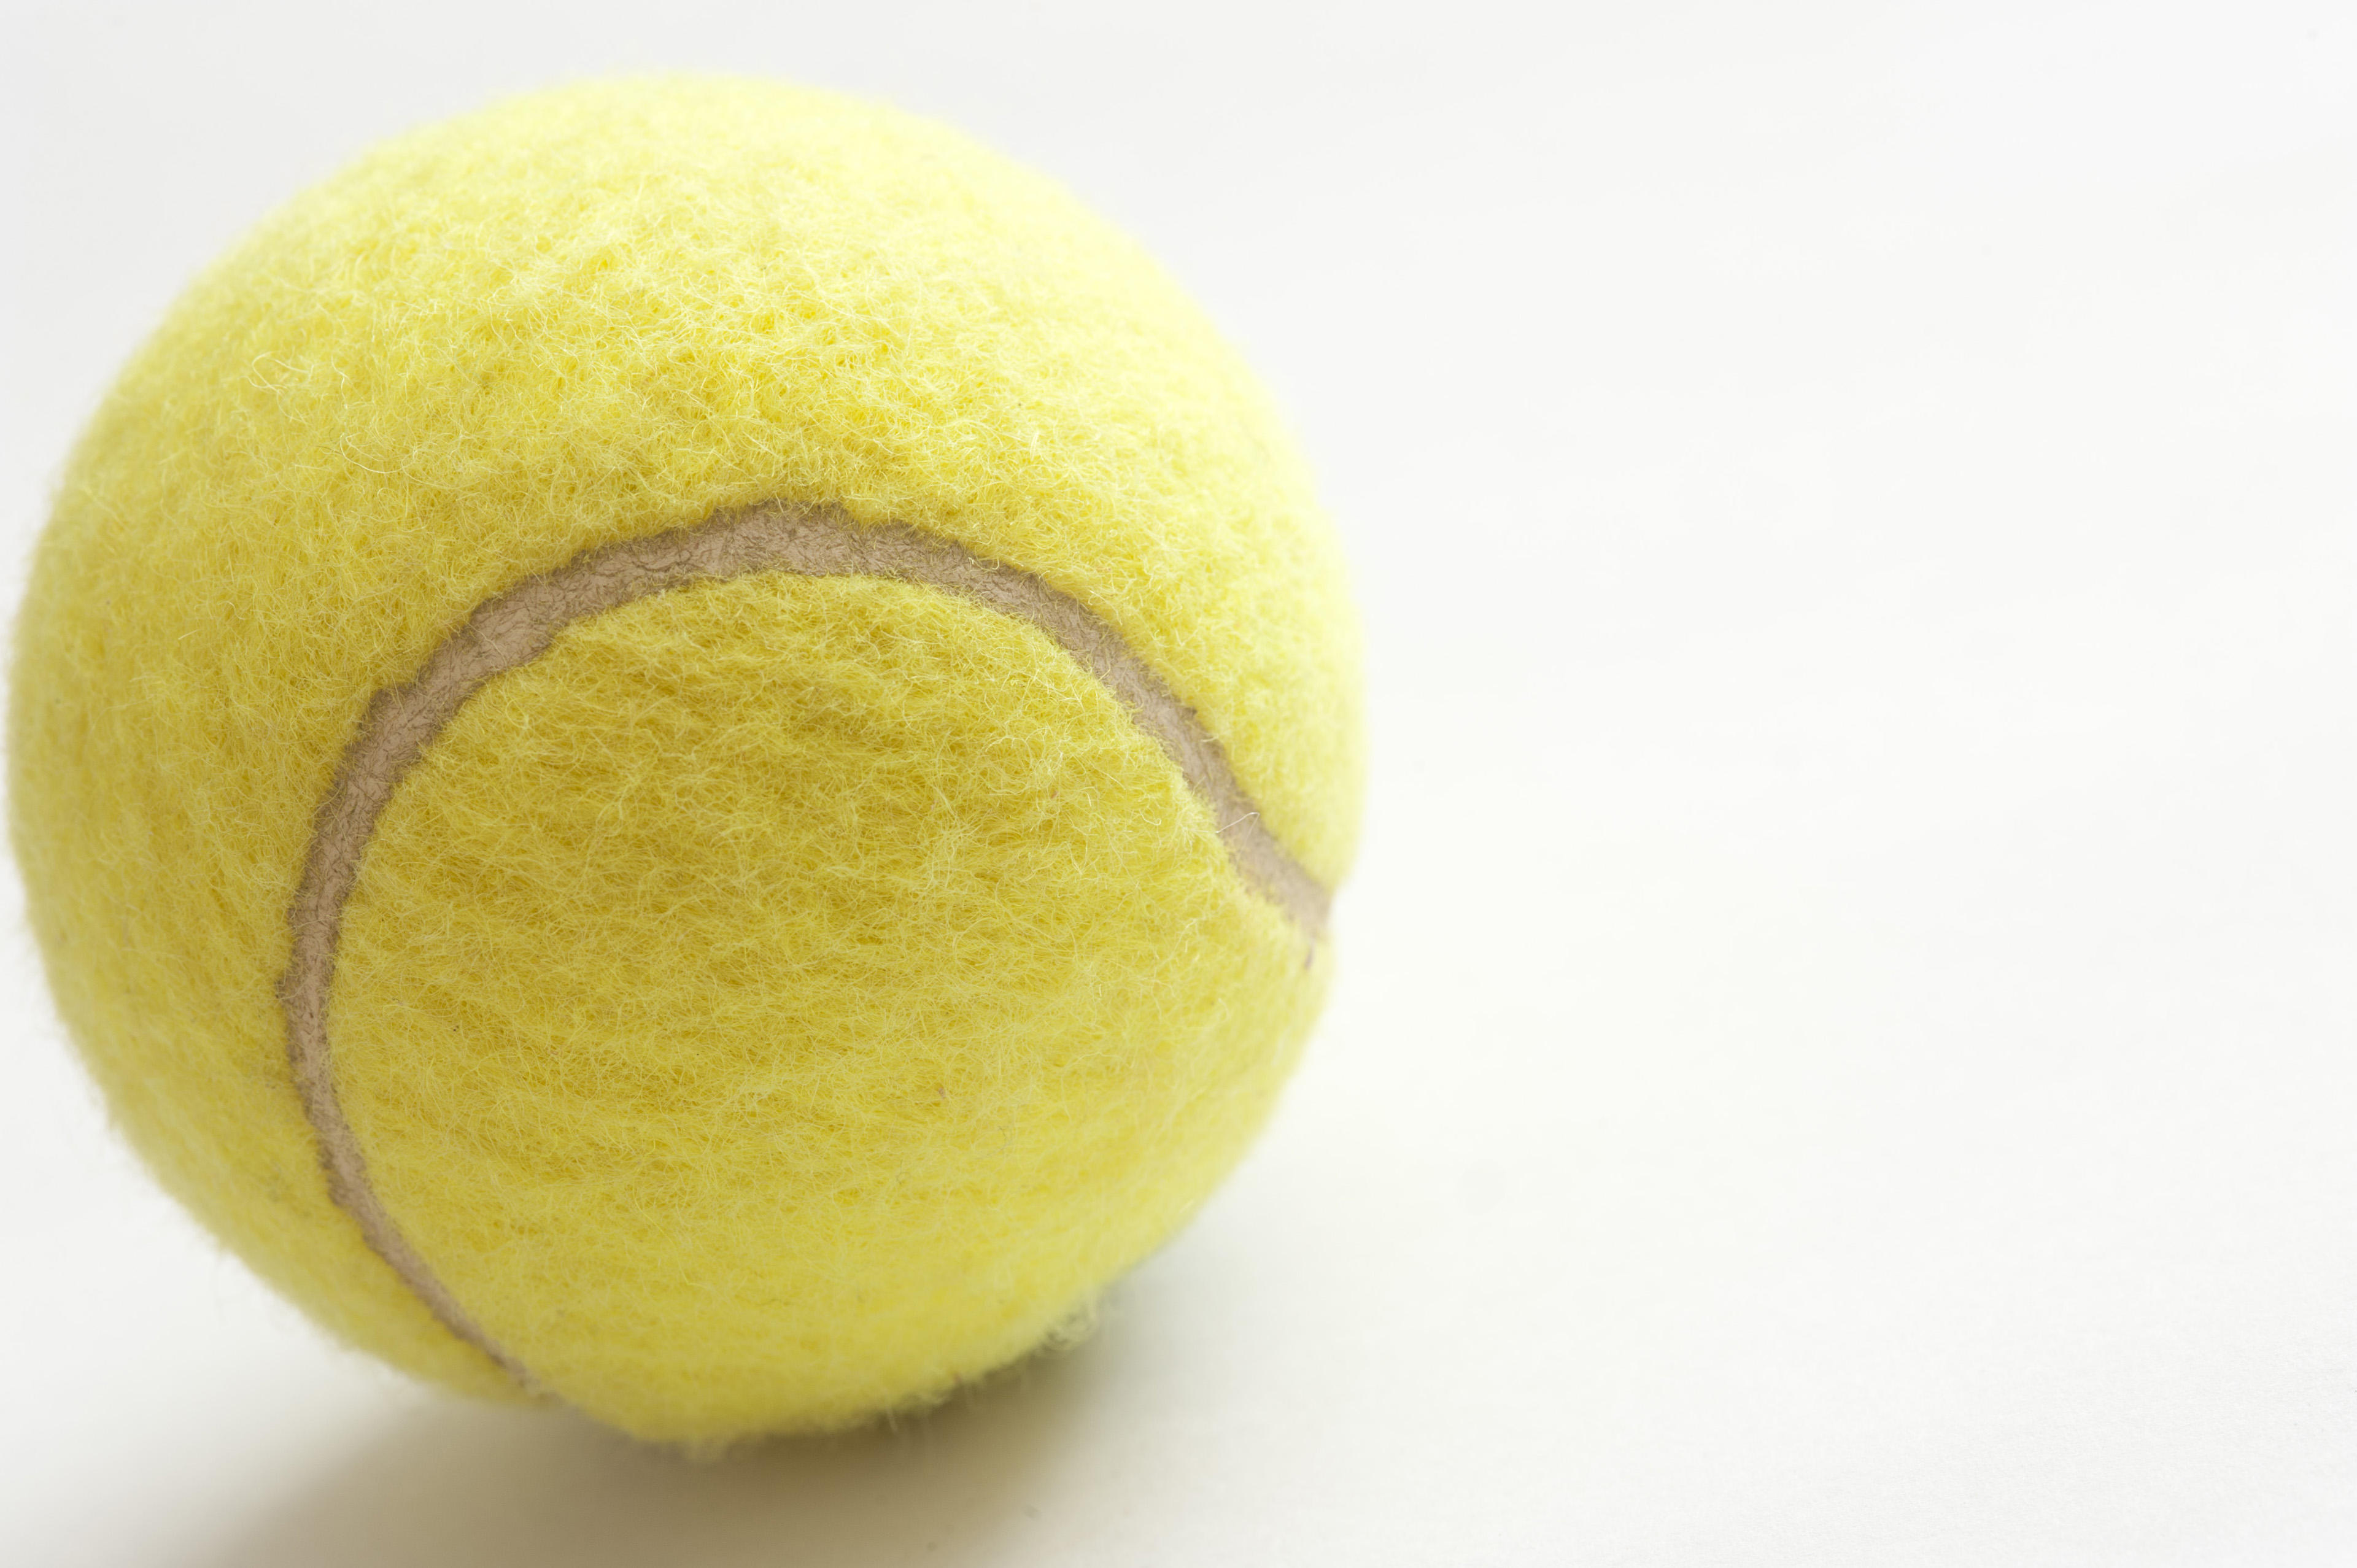 27ed6a5e32d7 Close Up of Yellow Tennis Ball Showing Texture on White Background with  Copyspace on Right Side